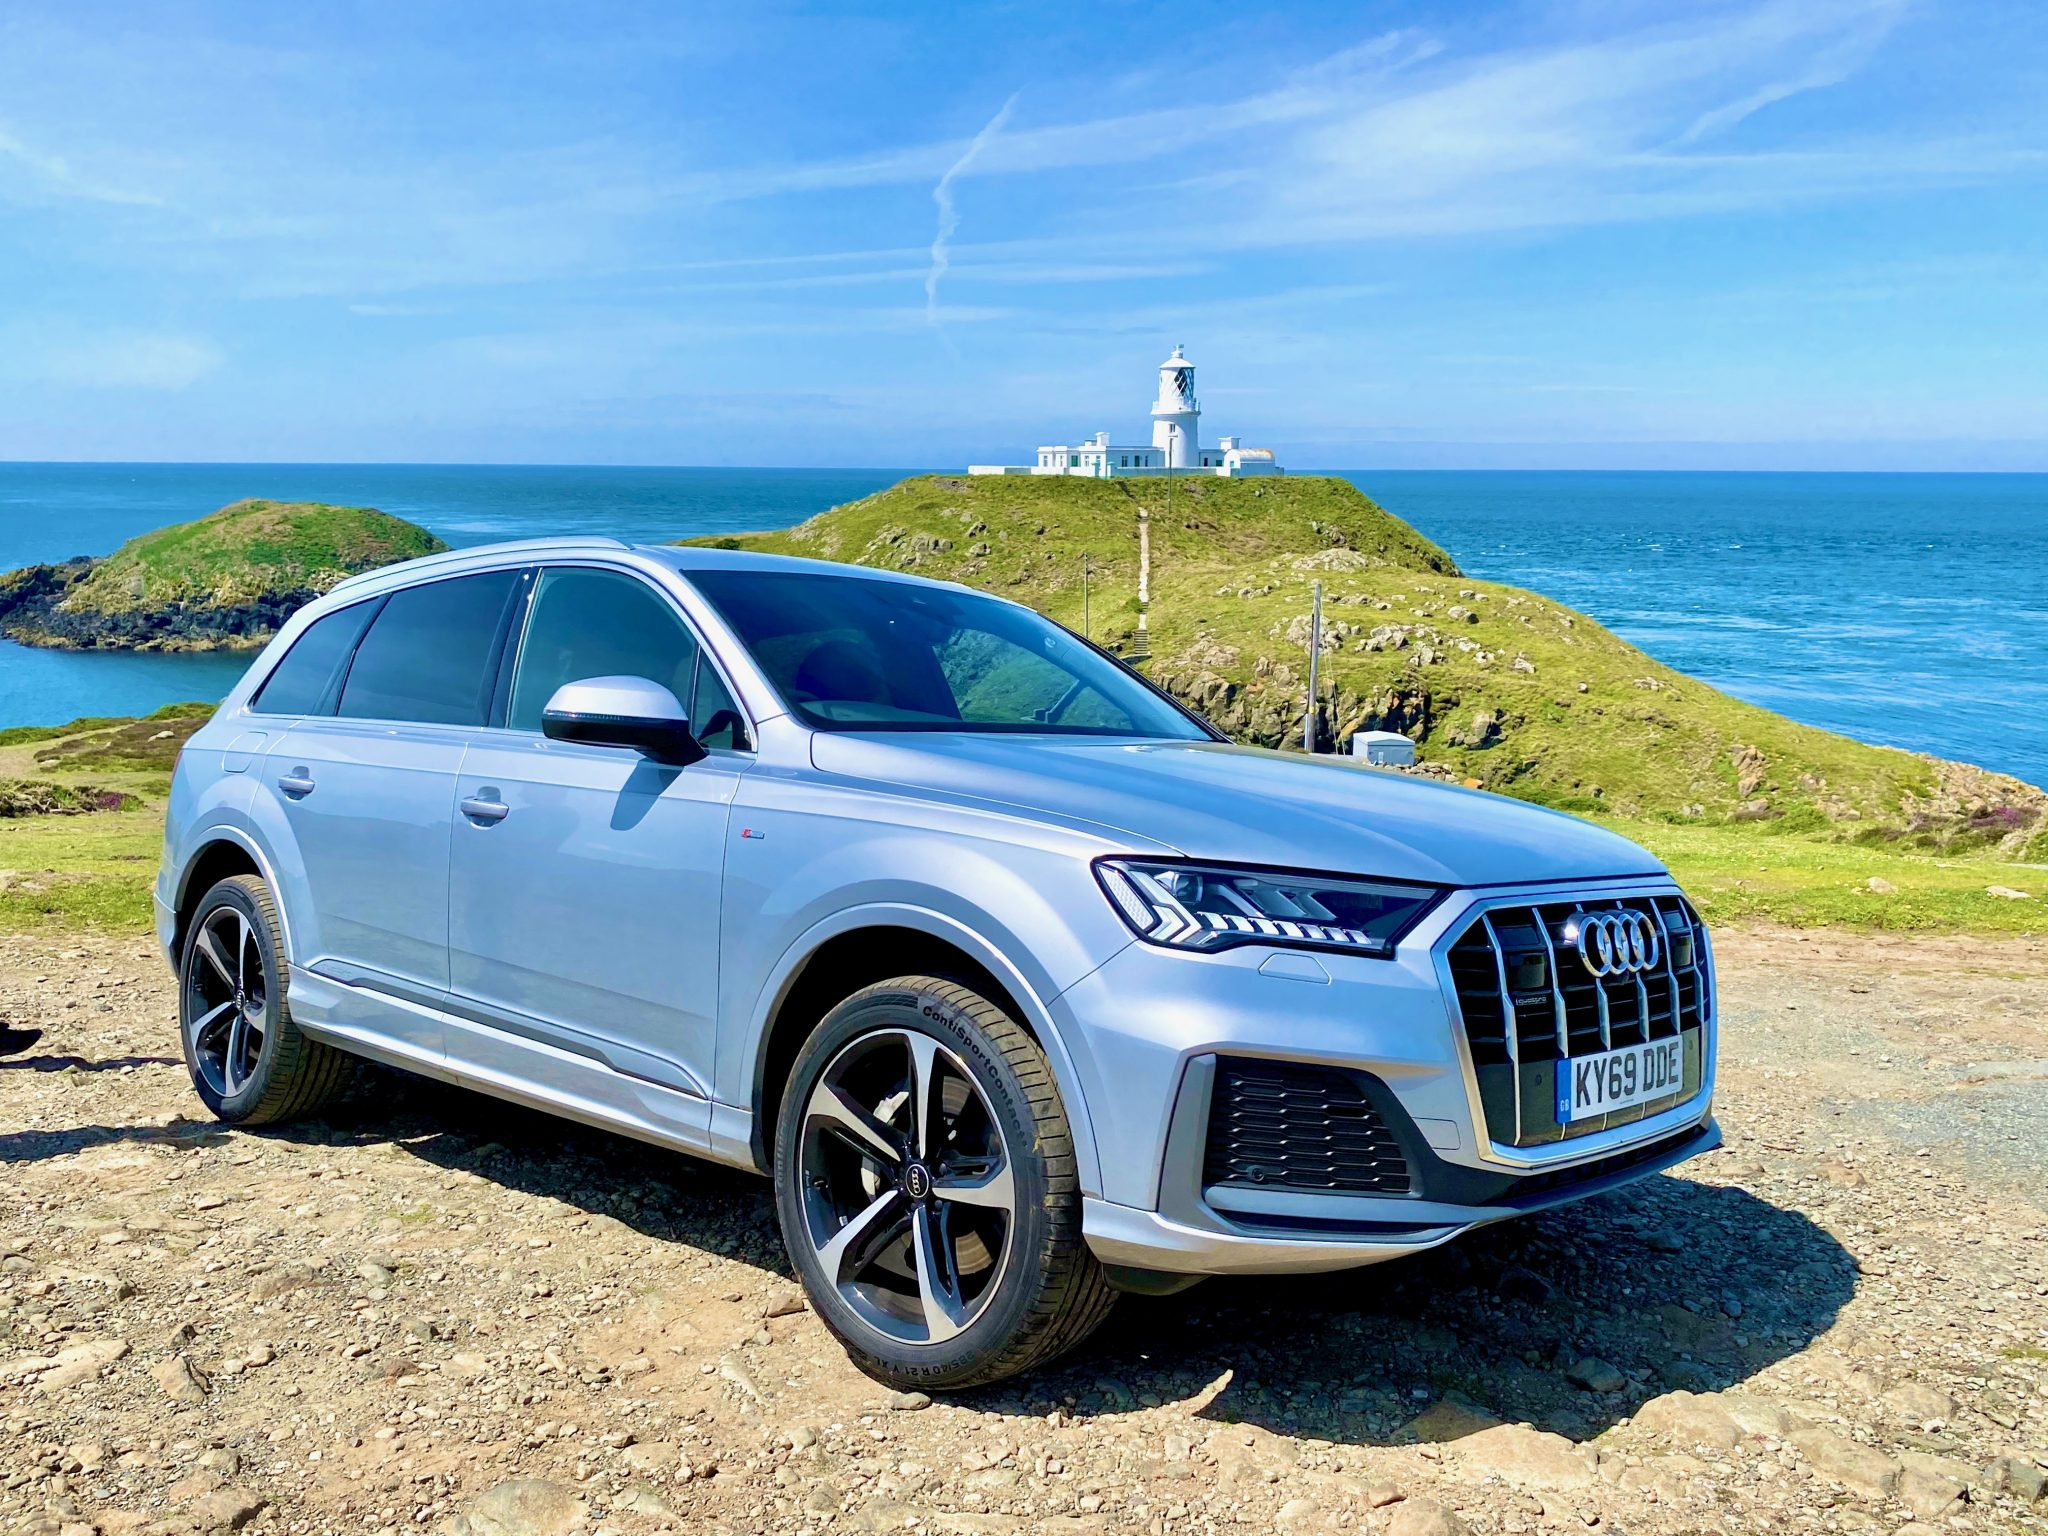 Audi Q7 Family Car Review - Family Day Tried and Tested